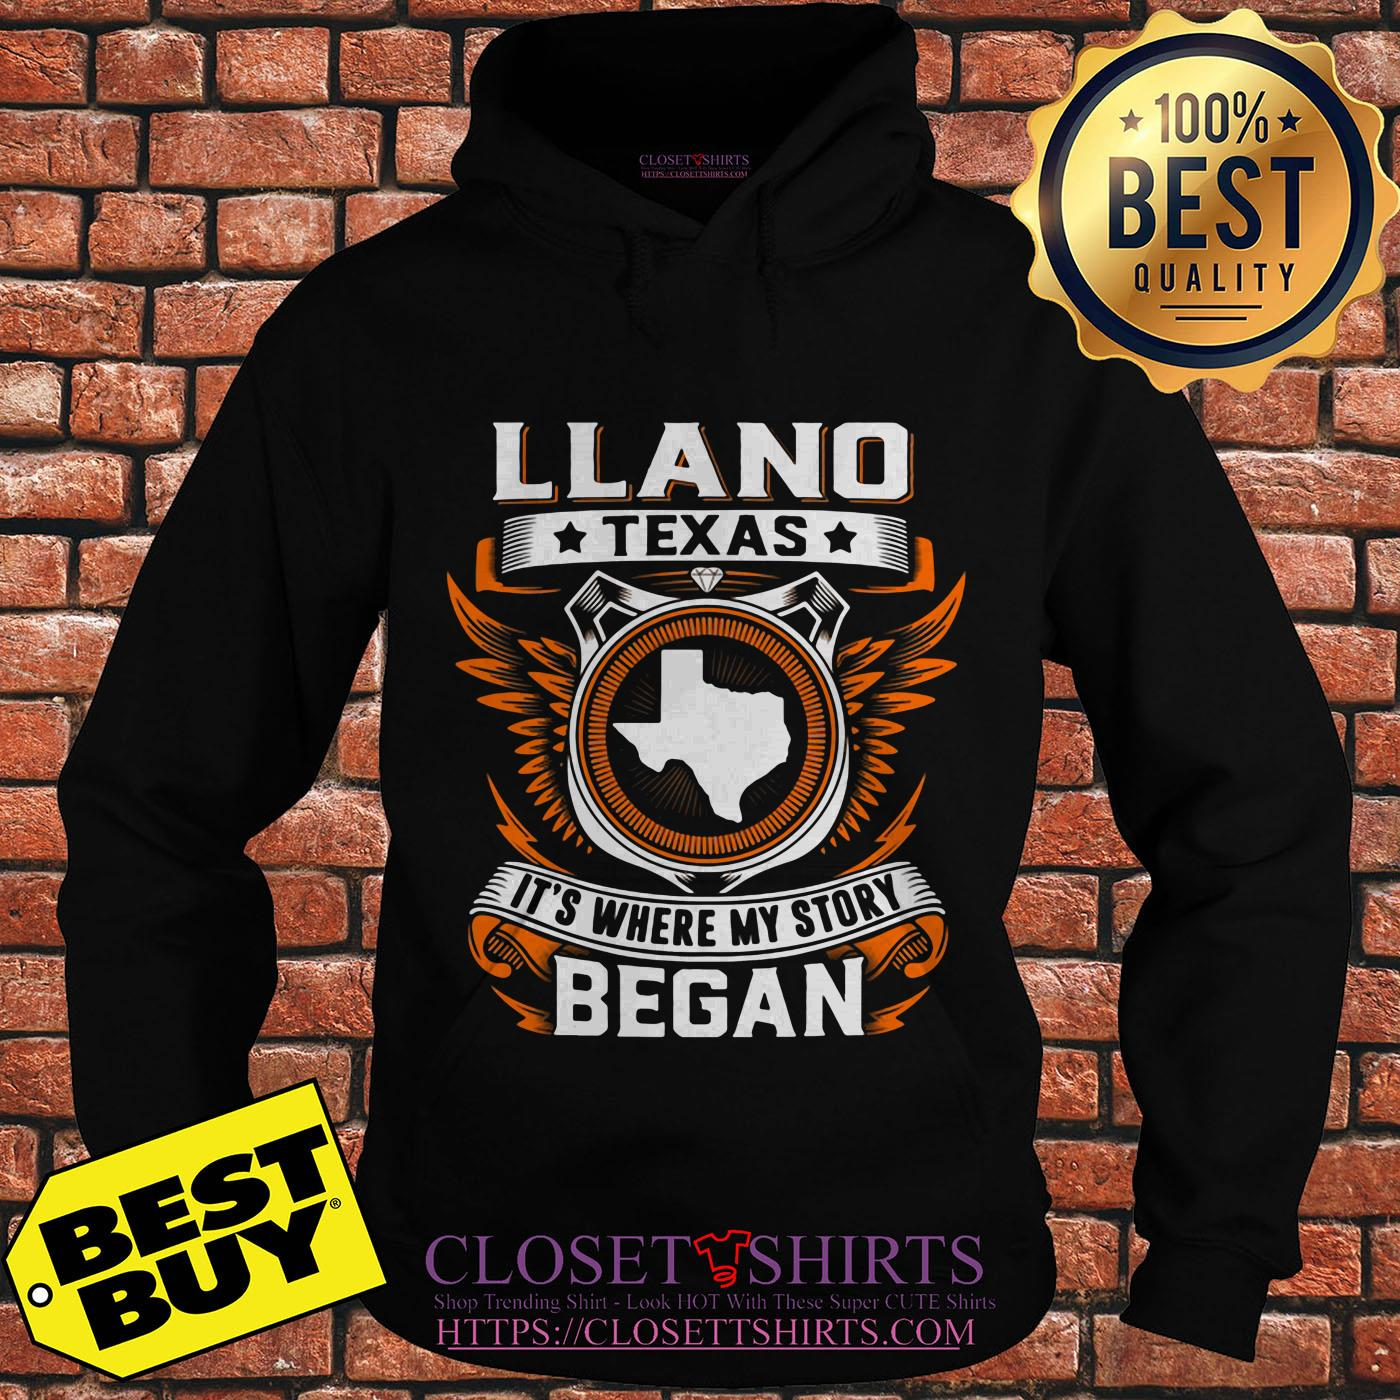 Llano Texas It's Where My Story Began hoodie